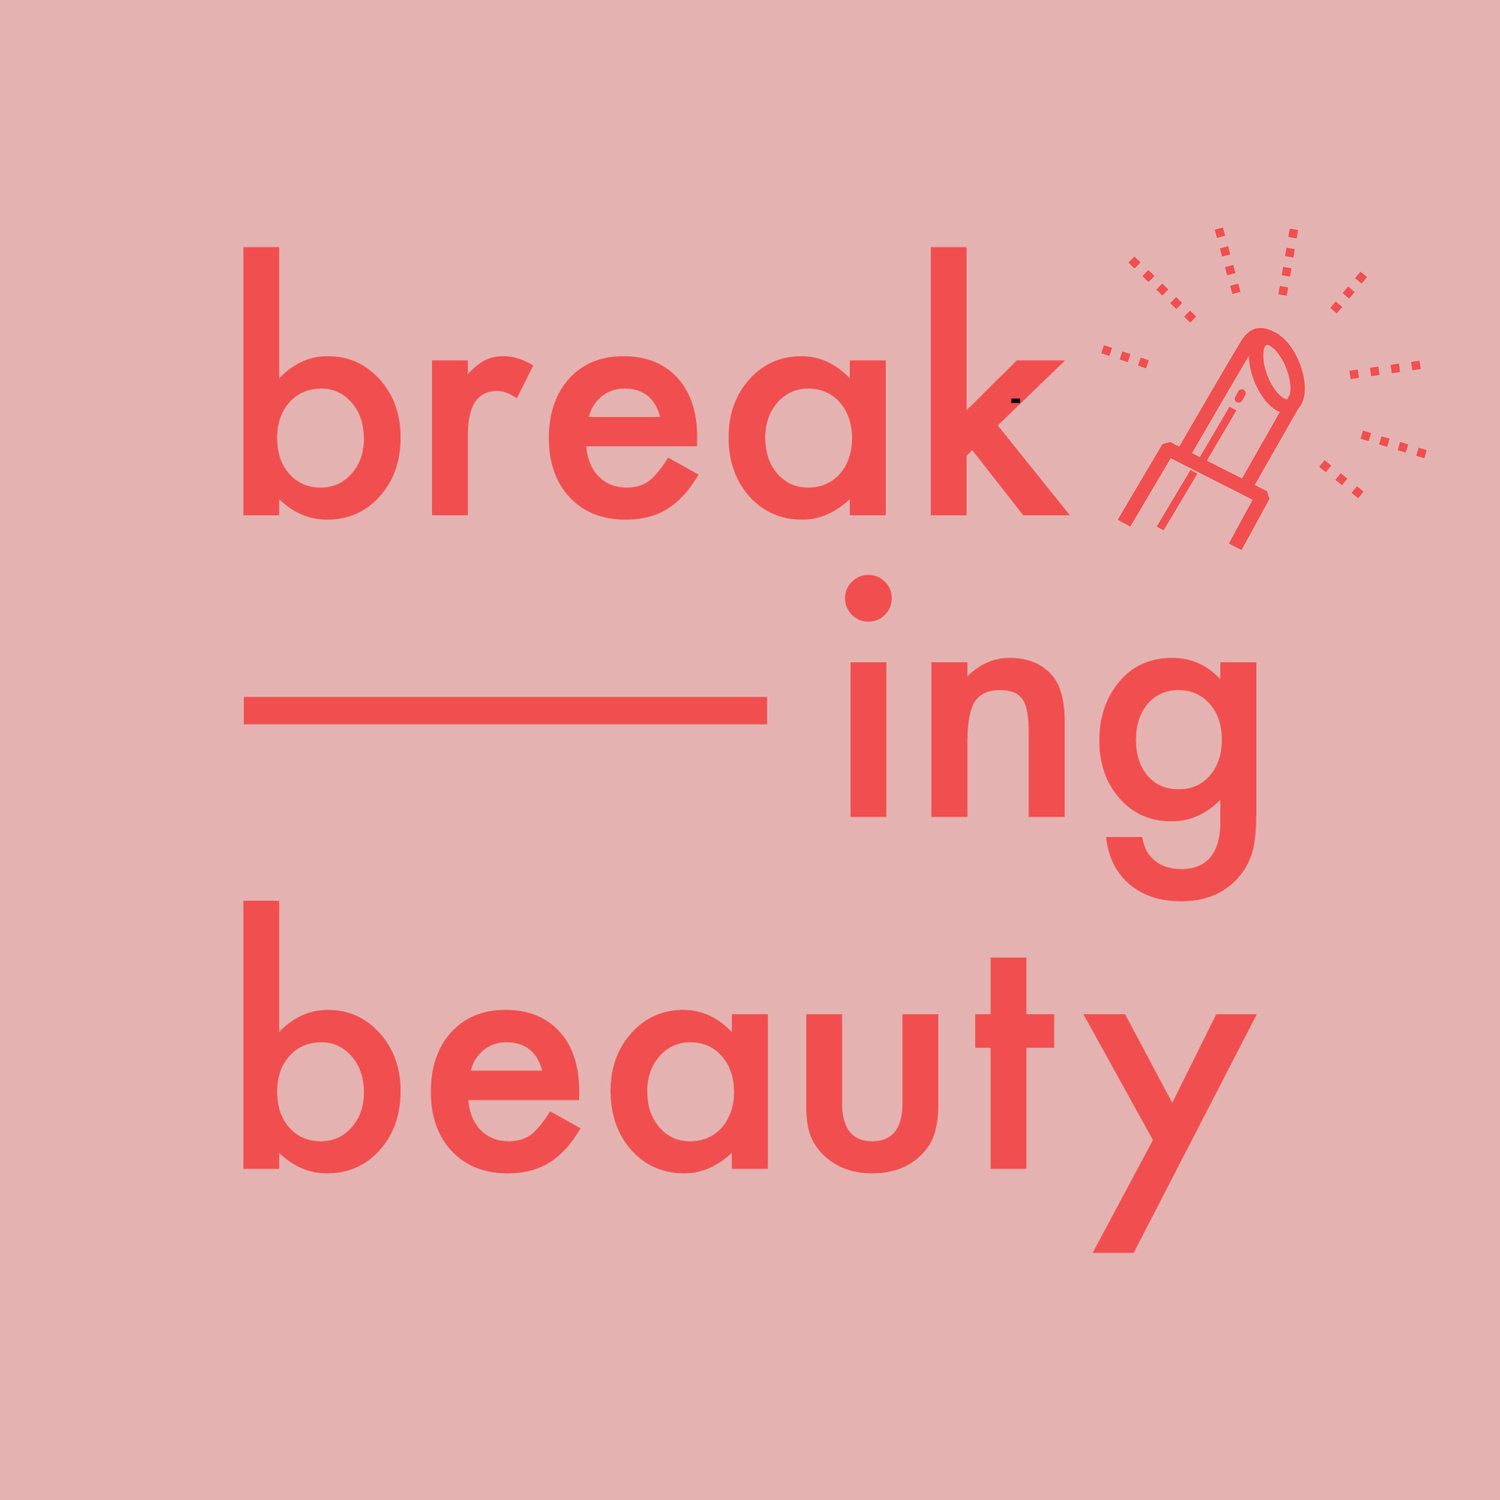 augustinus bader on breaking beauty podcast | This Weeks Good Things 4.26.21